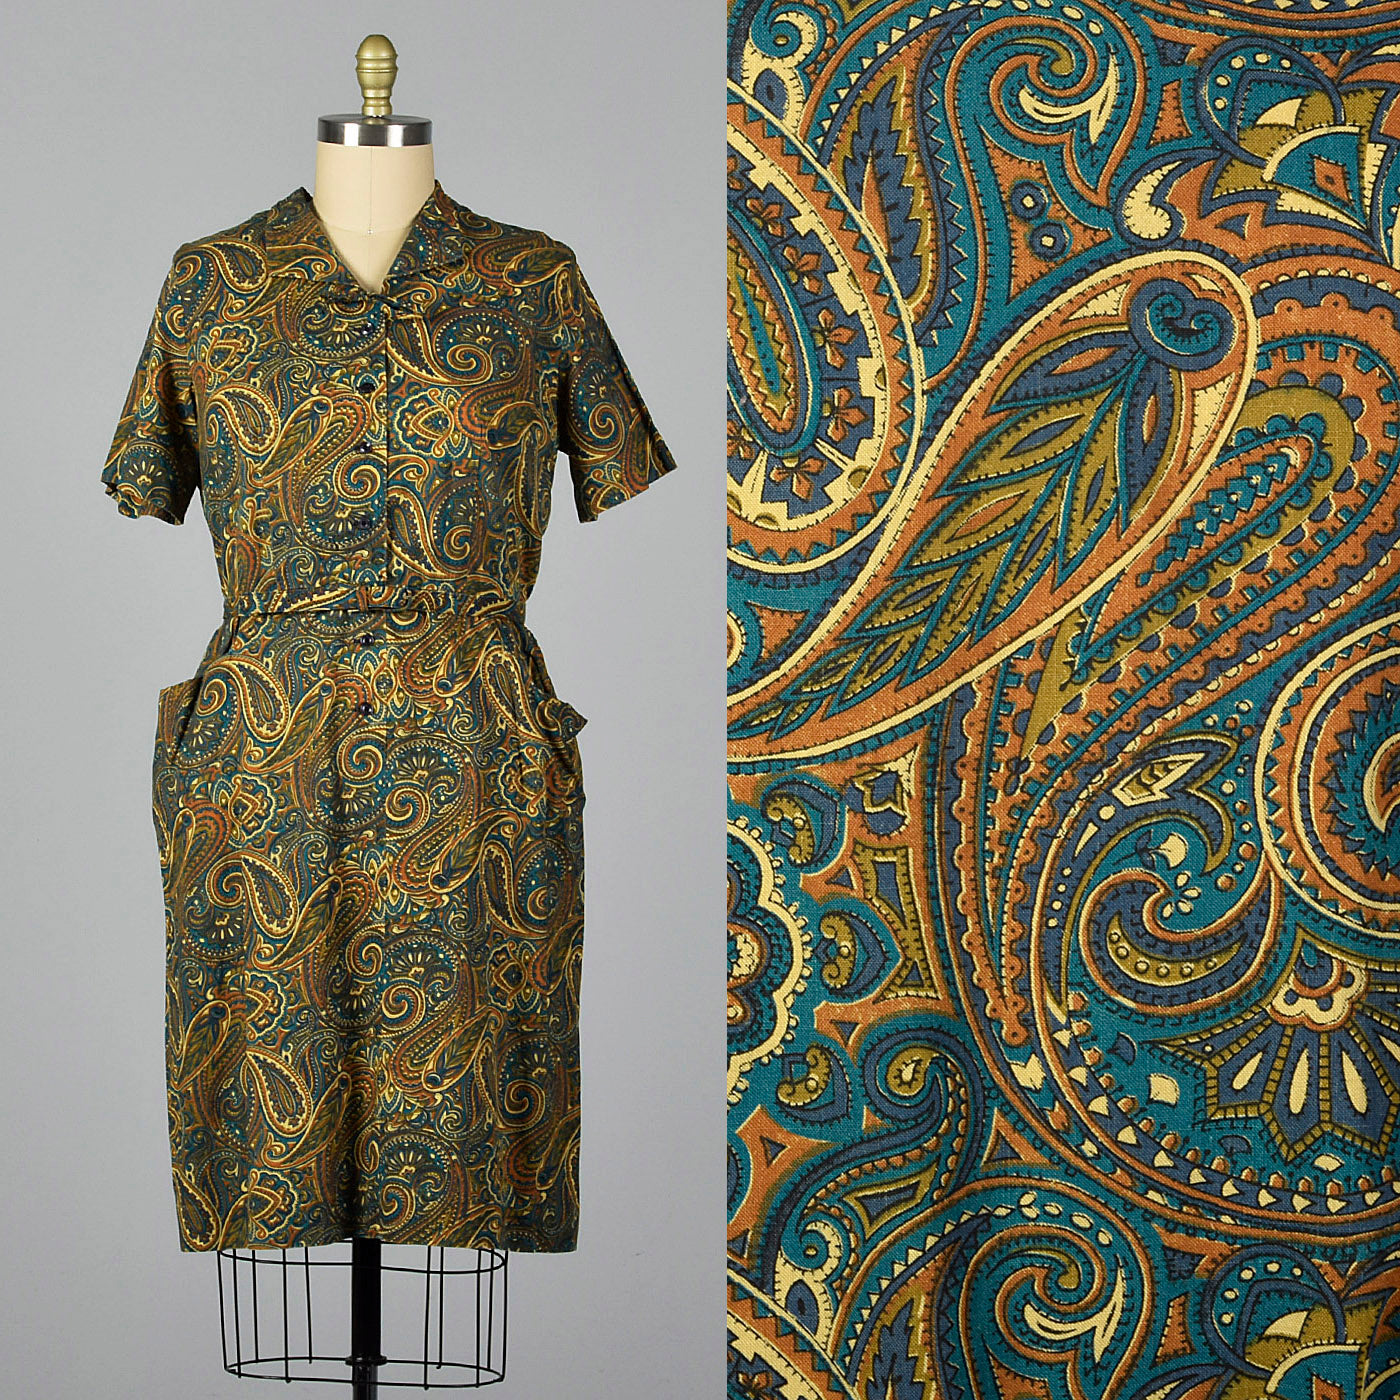 1950s Cotton Day Dress in Paisley Print